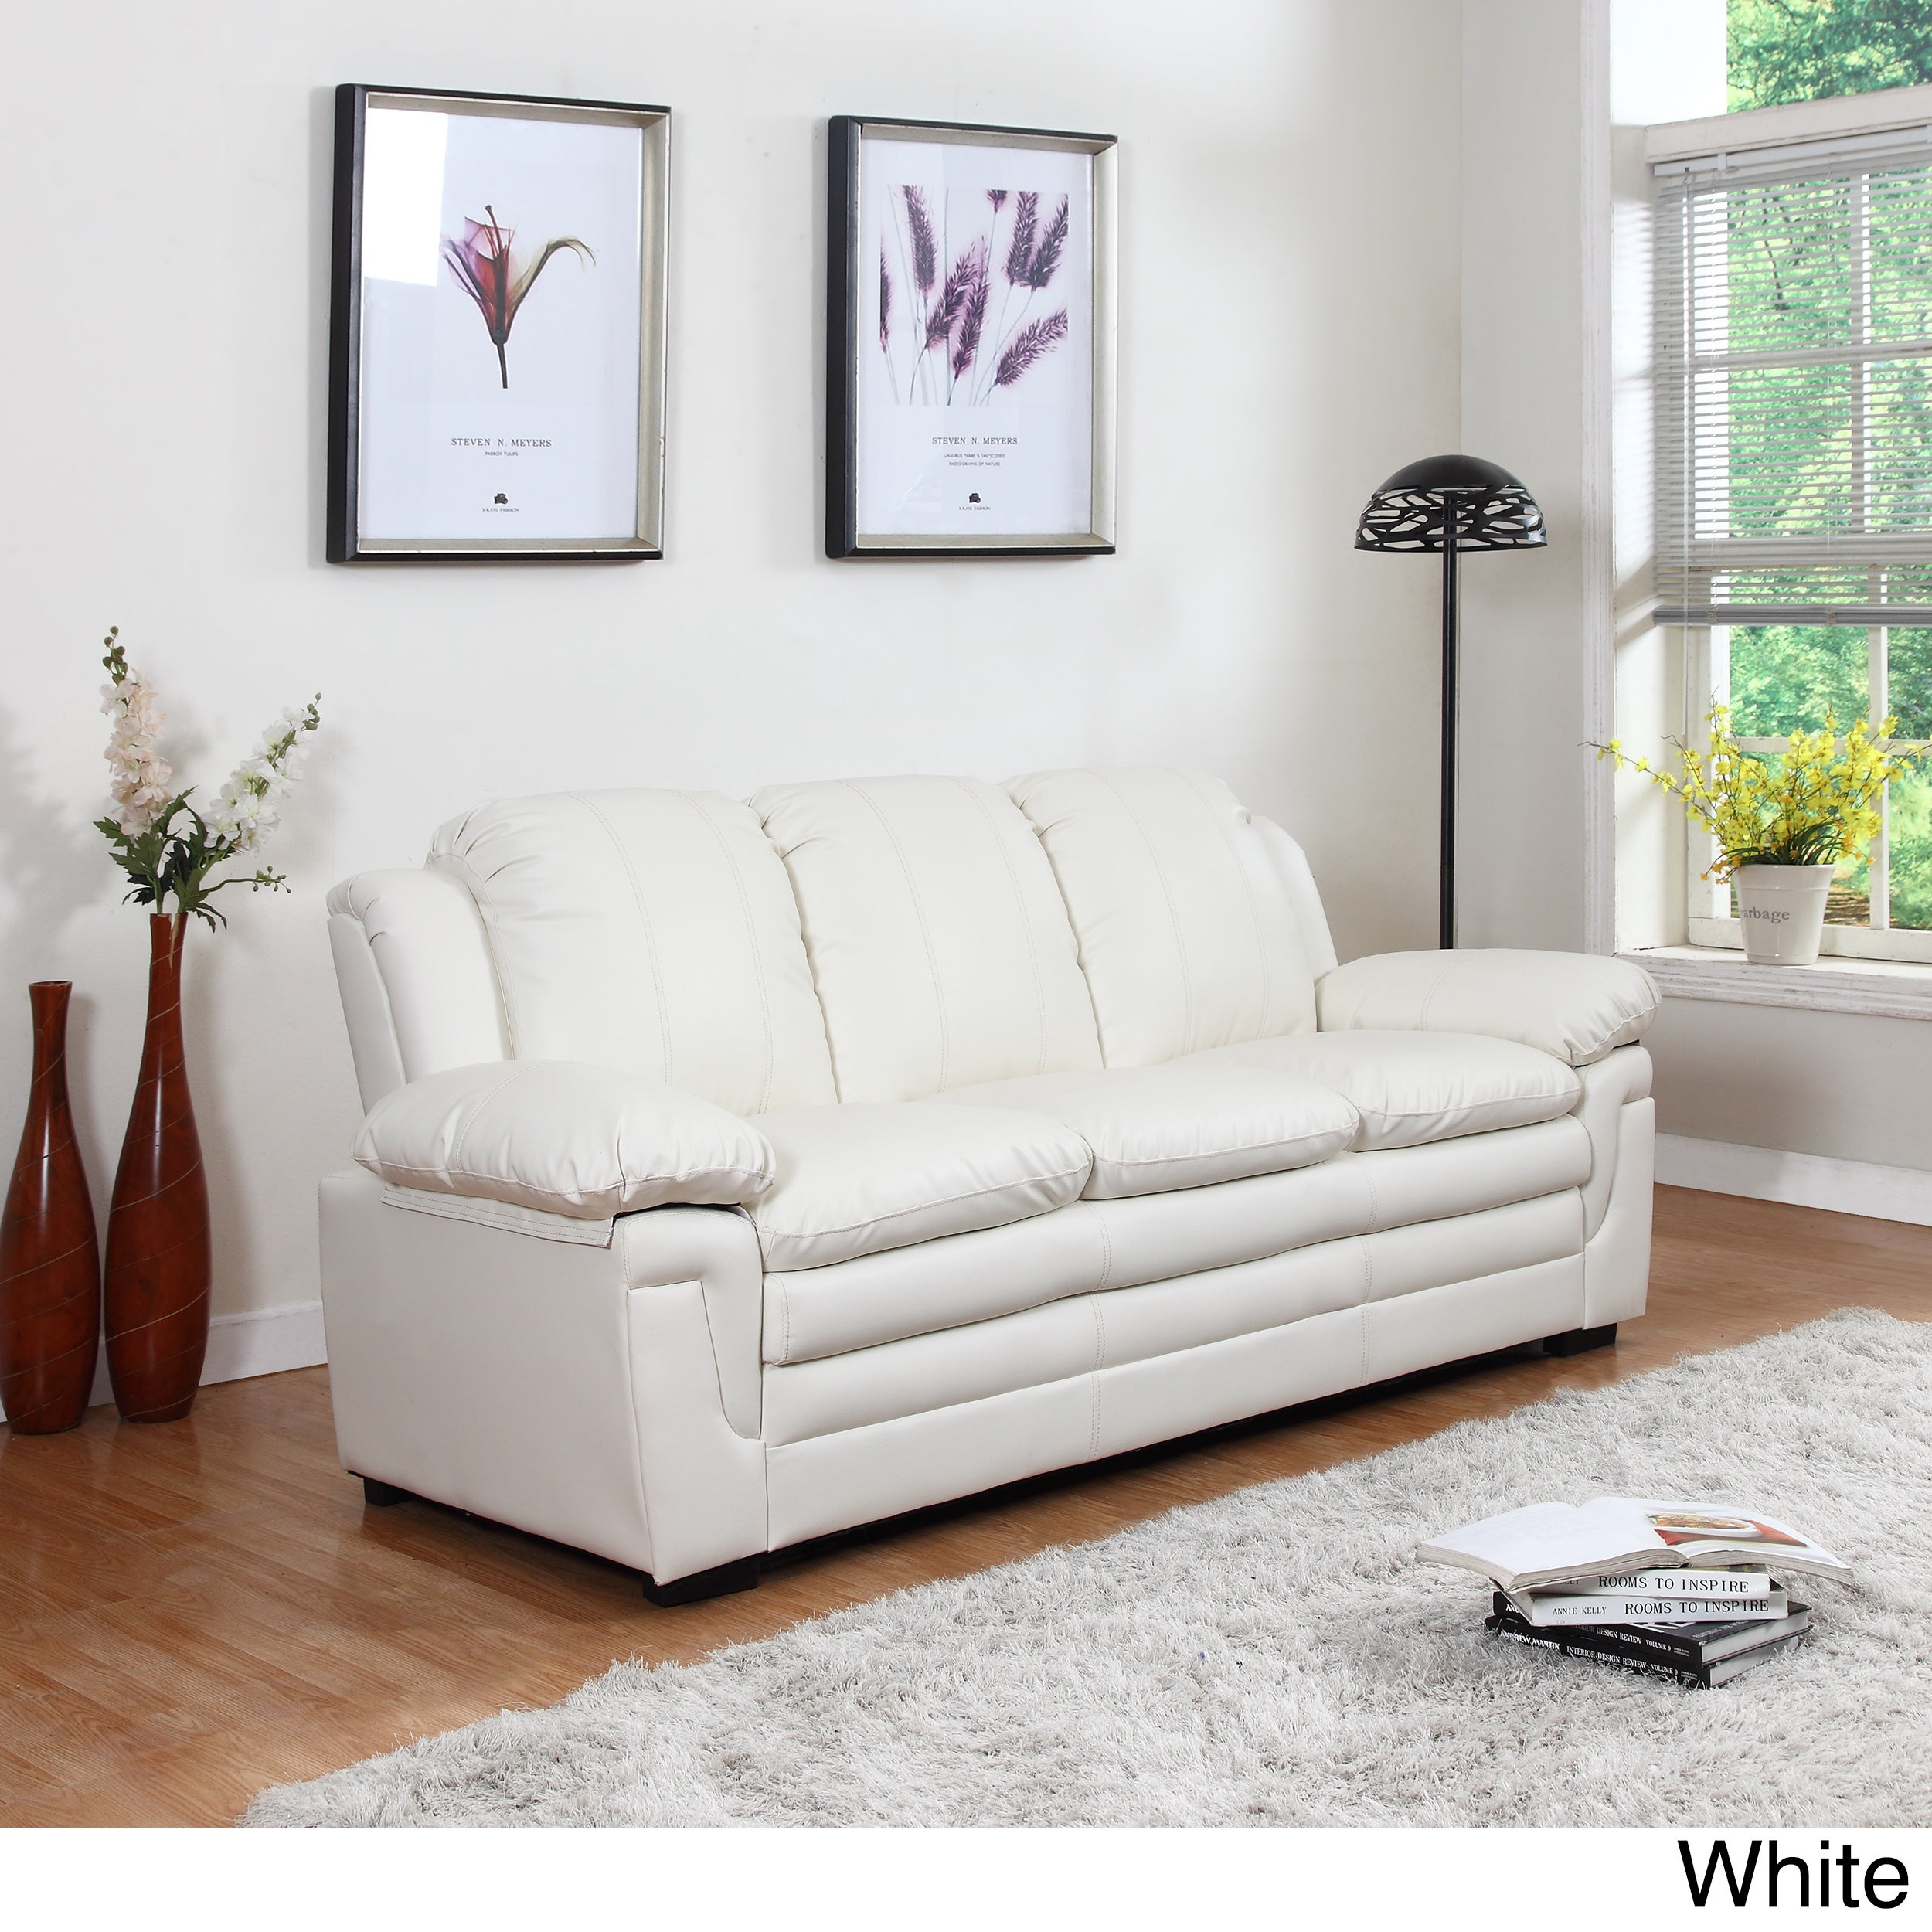 White Leather Sofa Rooms To Go: Classic Bonded Leather Living Room Sofa With White Stitch